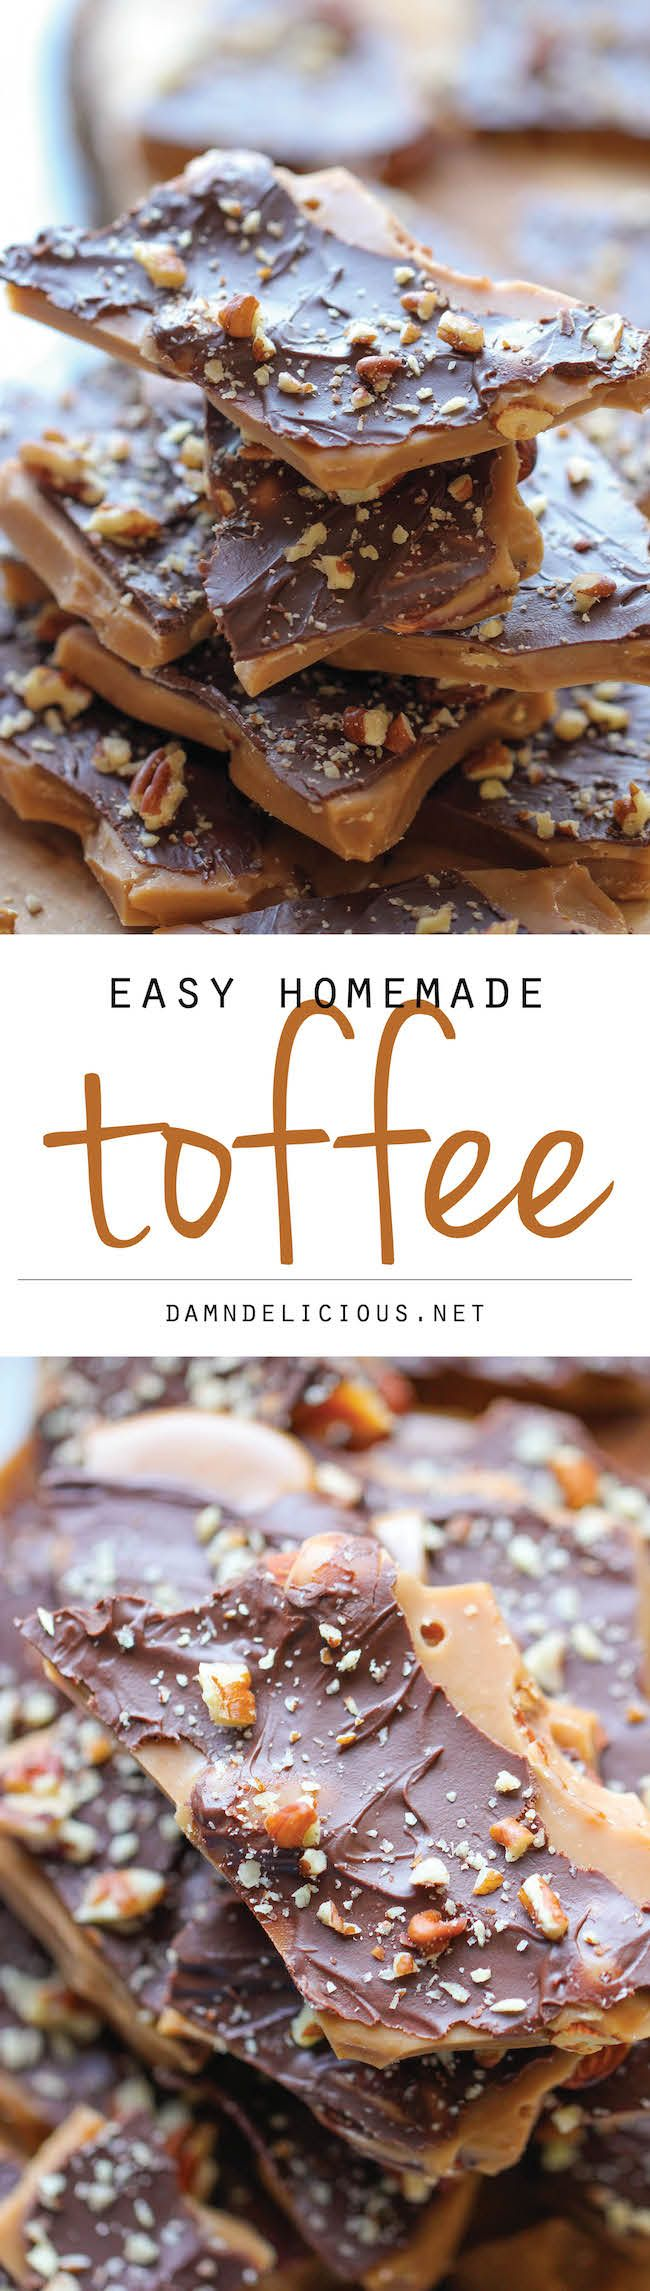 Easy Homemade Toffee - An unbelievably easy, no-fuss, homemade toffee recipe. So addictive, you won't want to share! (scheduled via http://www.tailwindapp.com?utm_source=pinterest&utm_medium=twpin&utm_content=post217513&utm_campaign=scheduler_attribution)